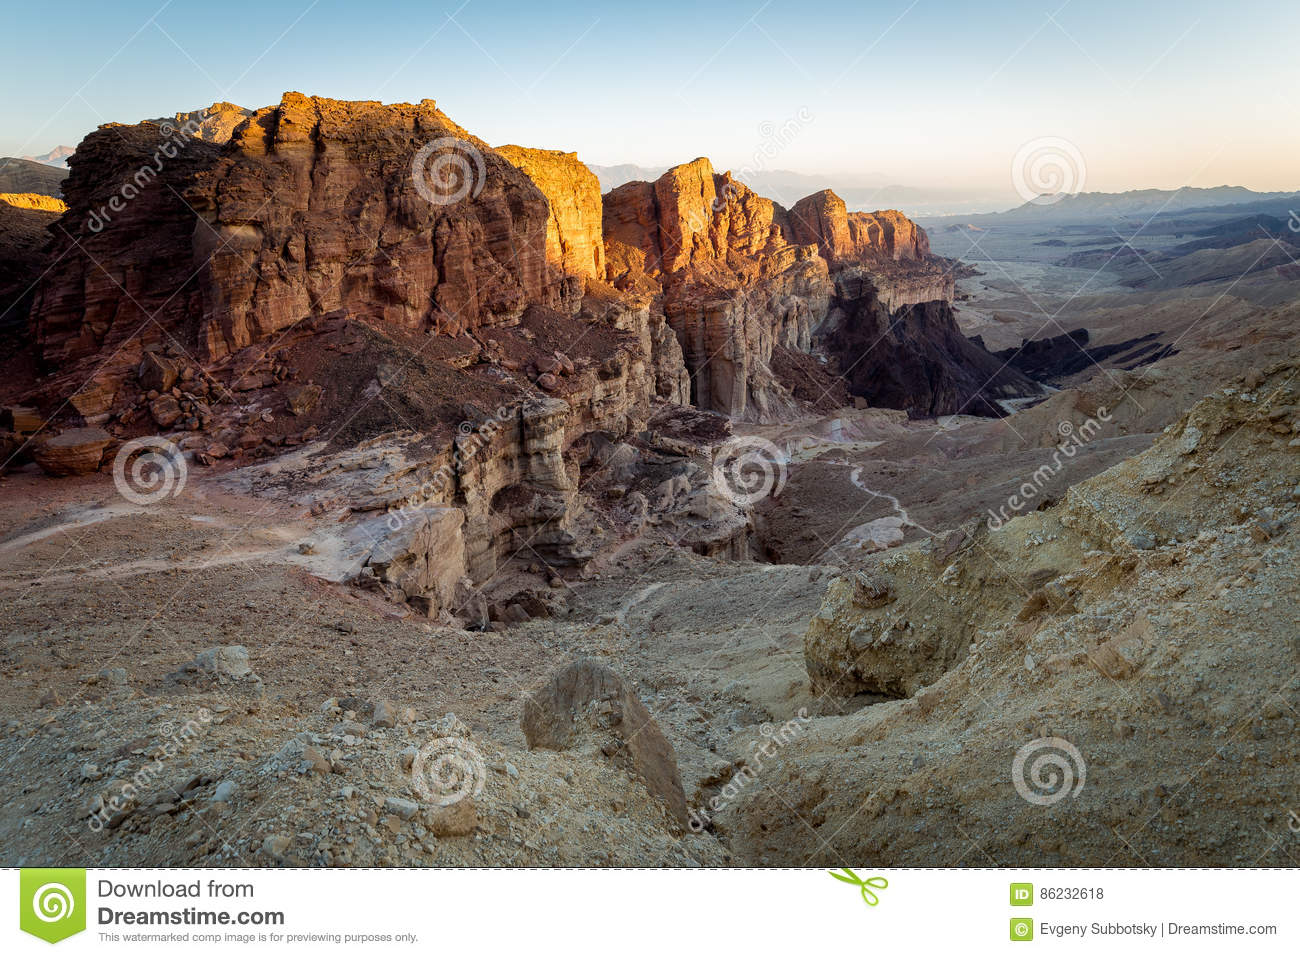 Desert canyon mountains rock cliffs gorge, Negev travel Israel.